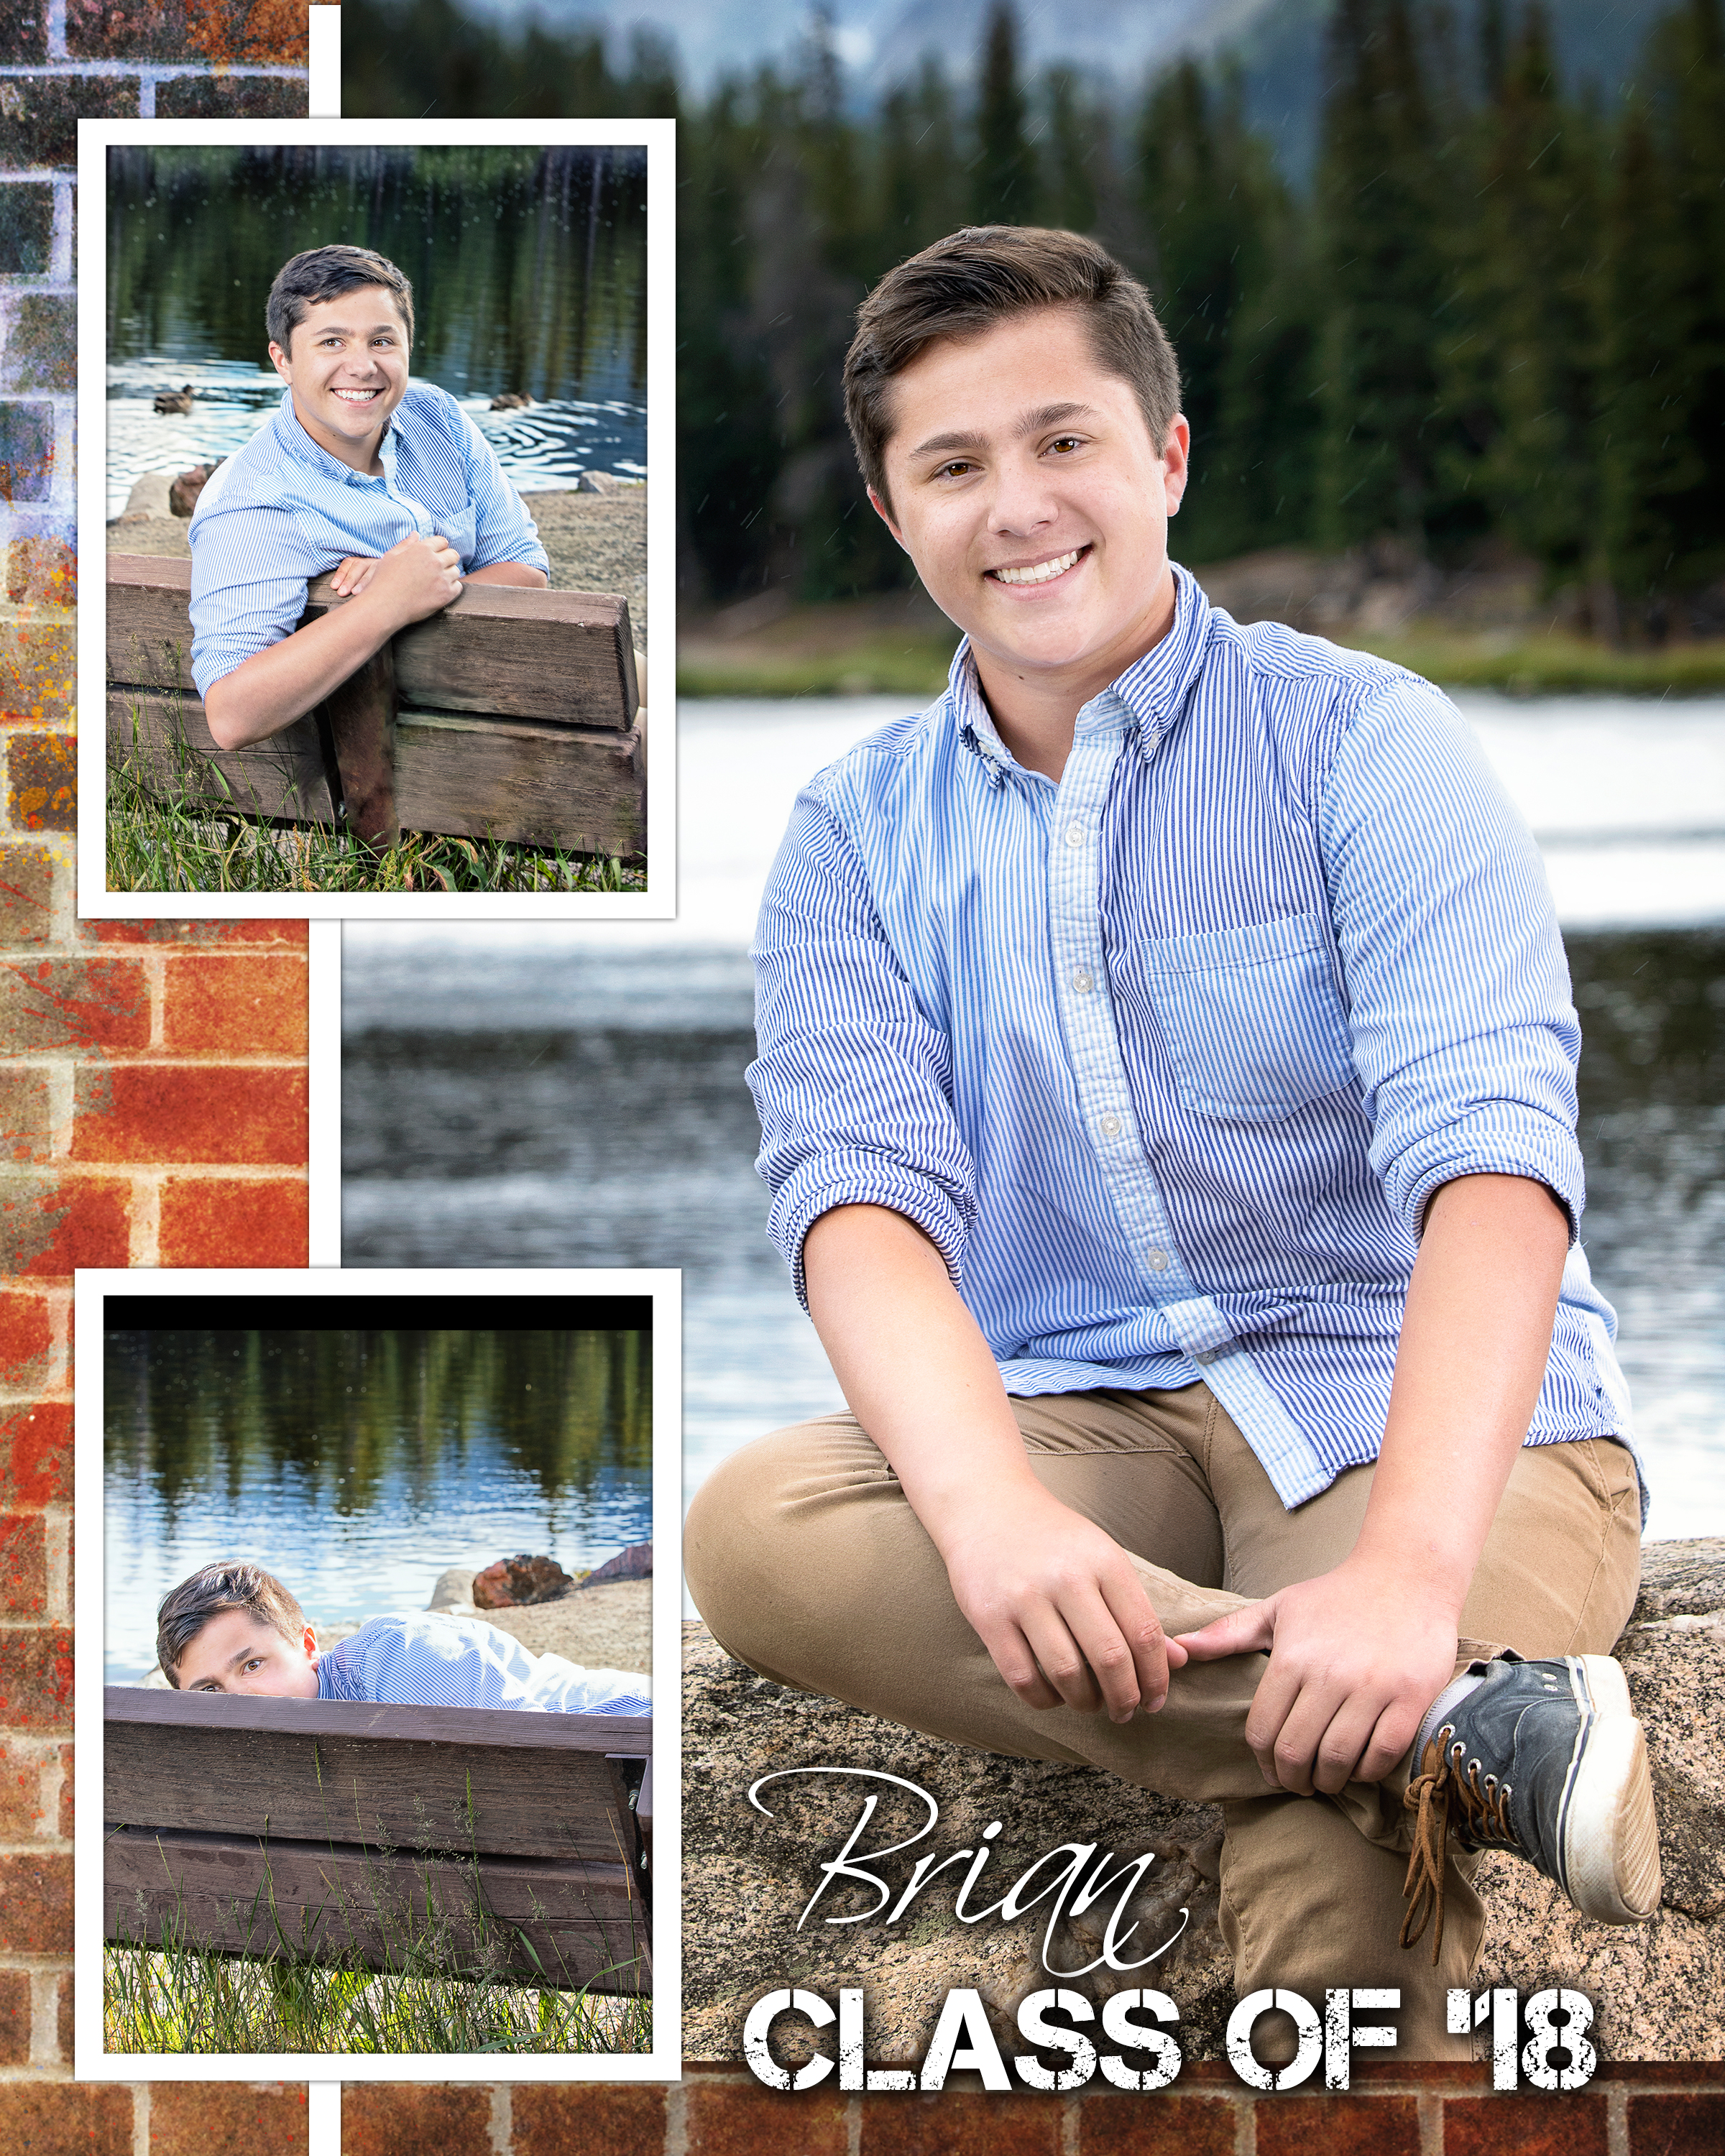 senior-pic-collage.jpg